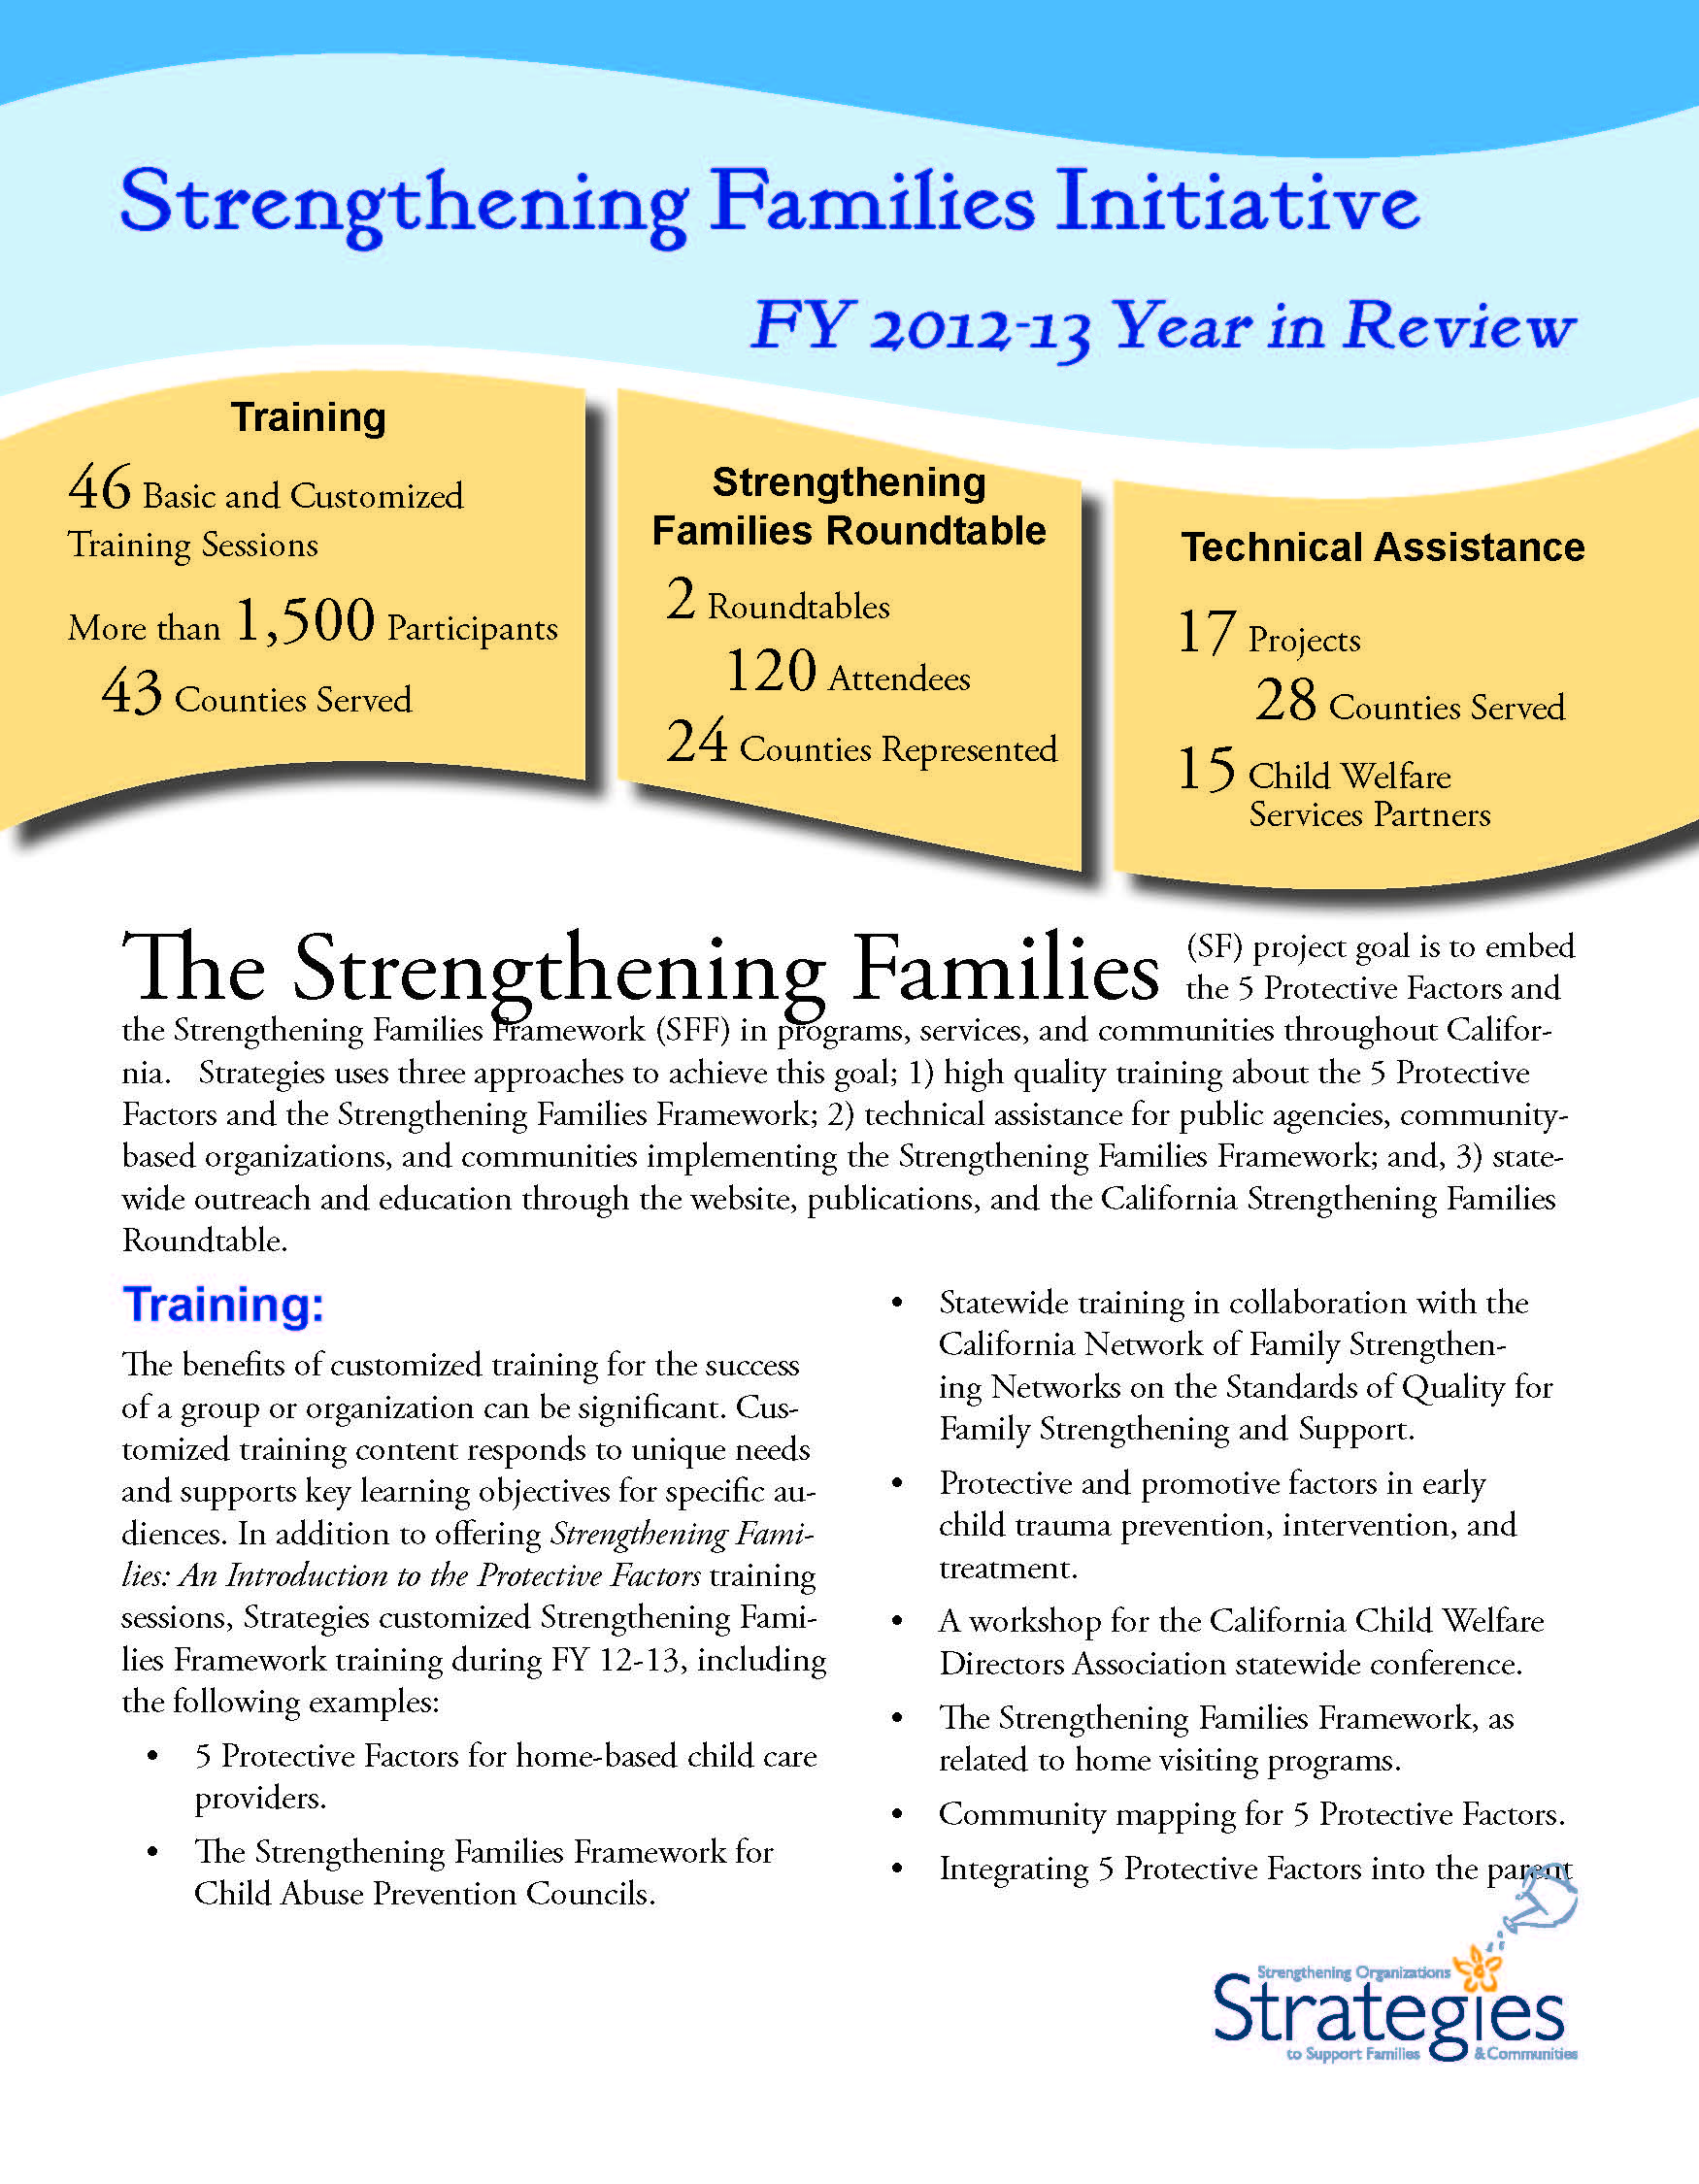 NS7-Strengthening Families Annual Report 2012-13